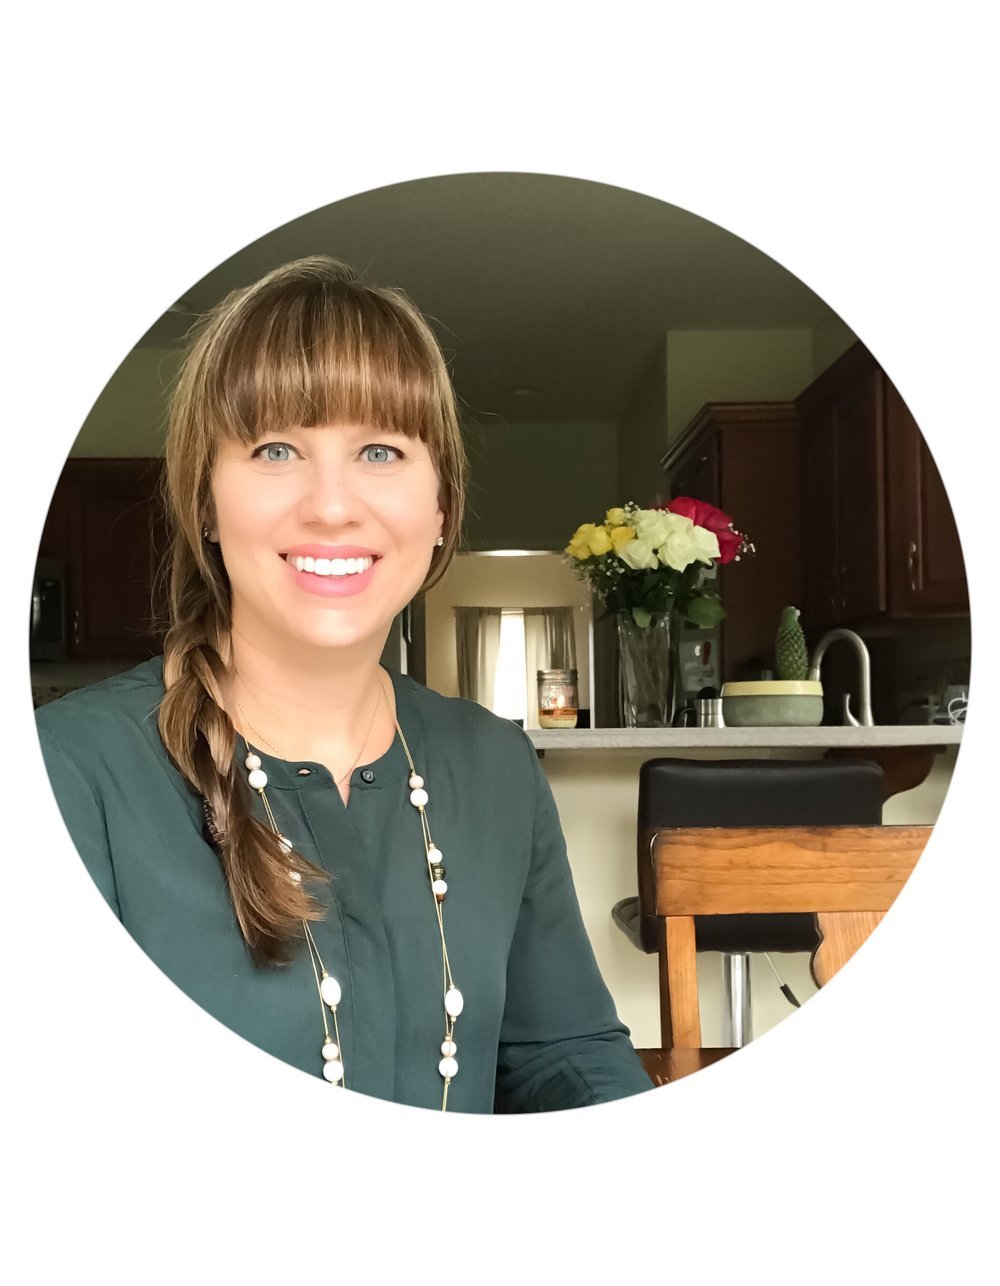 Hi, I'm Shauna and welcome to Balancing Bites Nutrition. My goal is to help you feel comfortable in your body and in control of your health through mindful eating and yoga. Thanks for visiting.